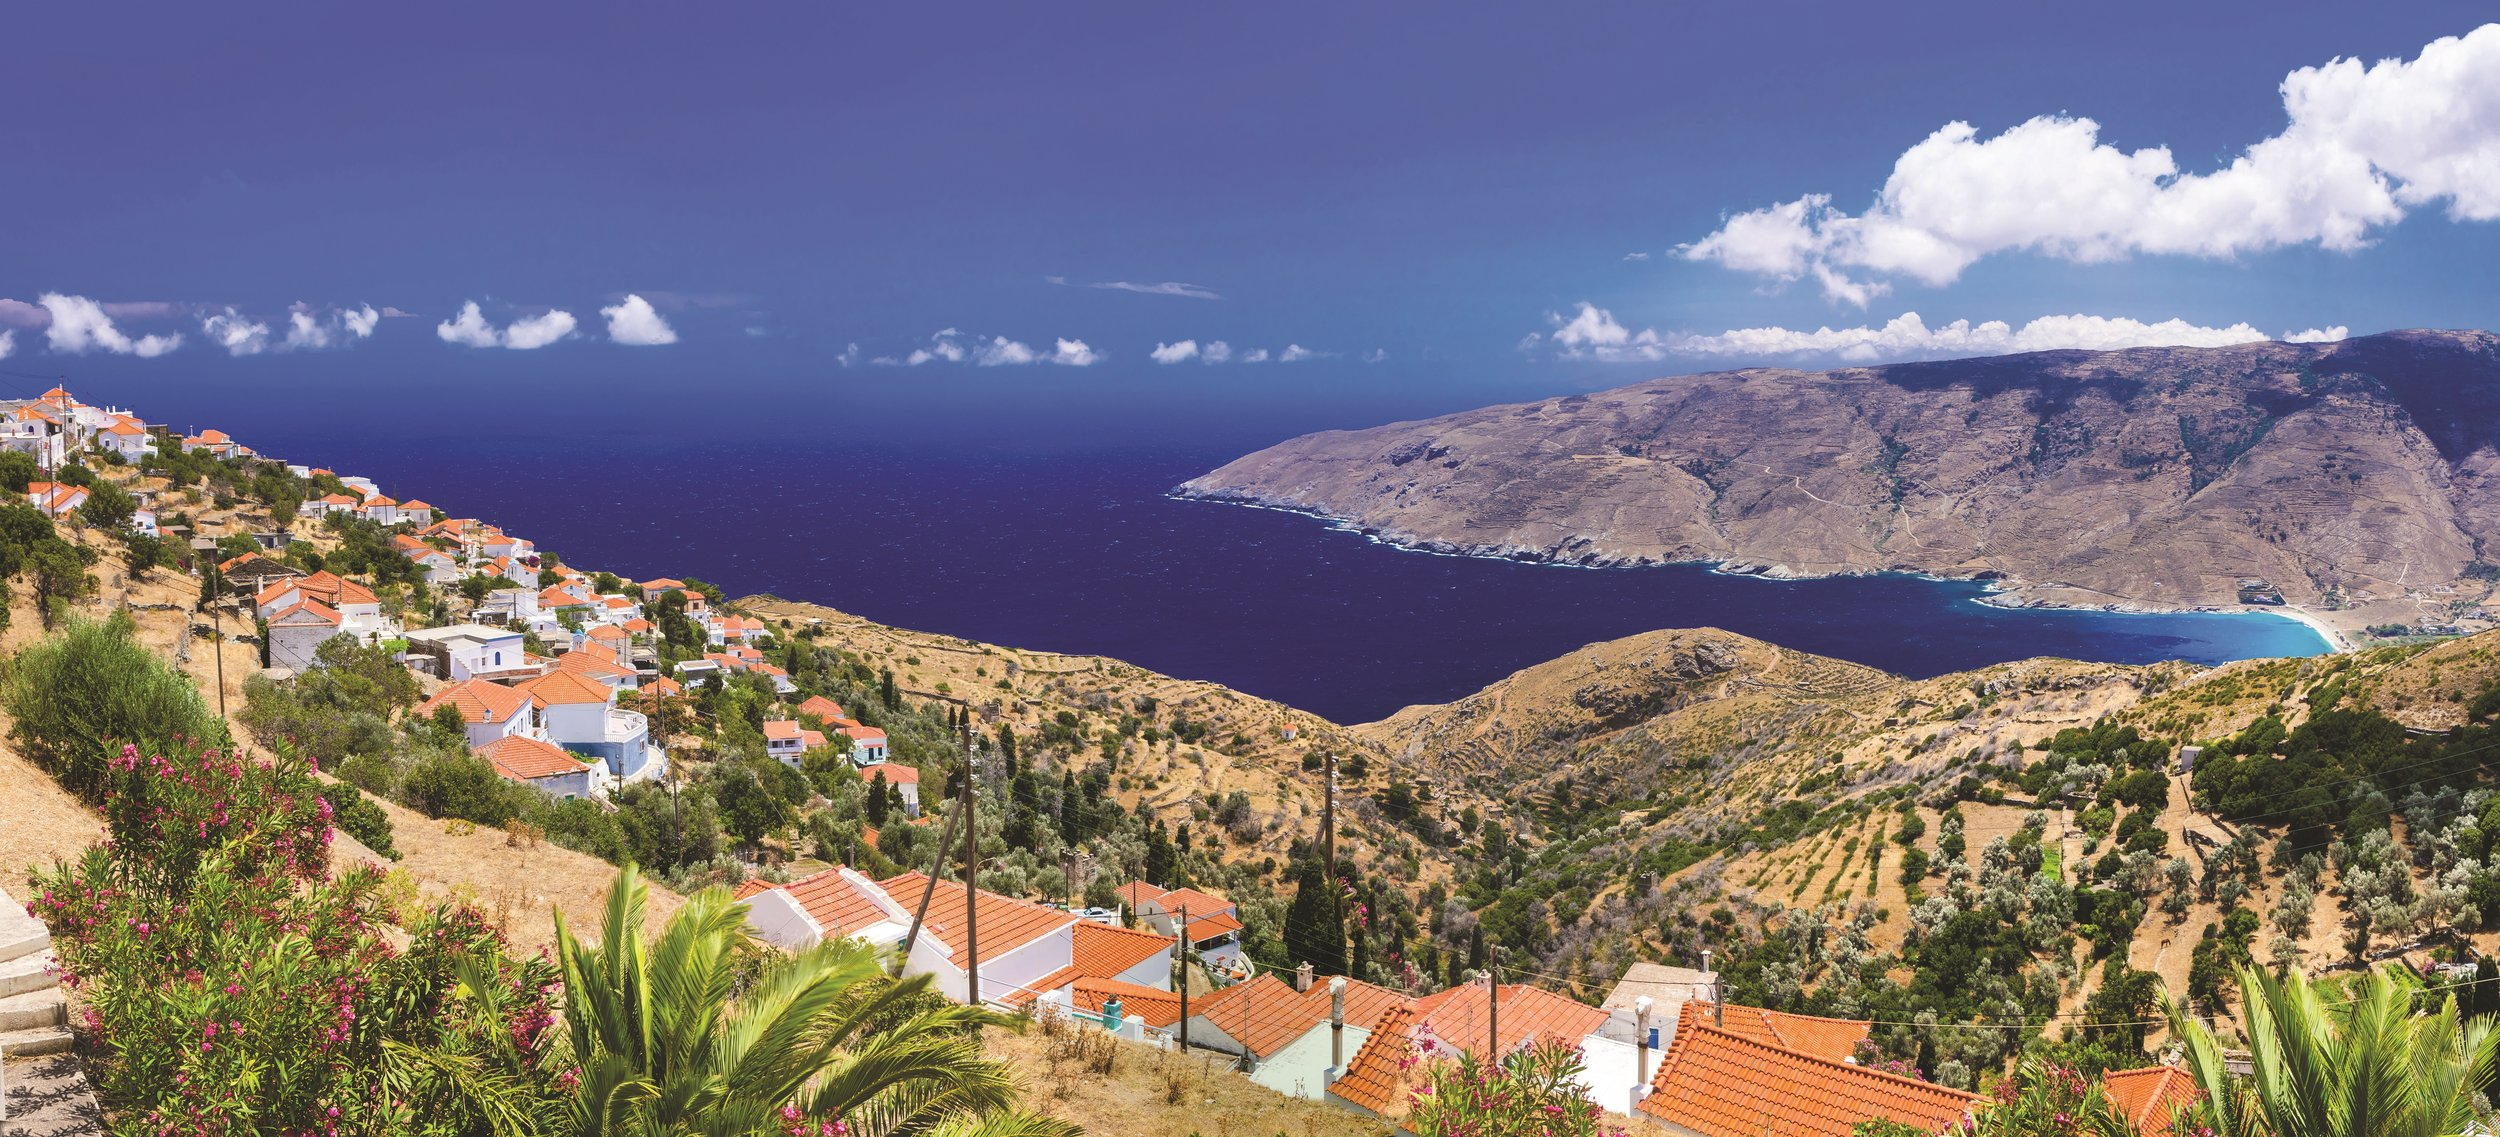 86 edit shutterstock_554001346 Authentic traditional Greece - beautiful Andros island. Cyclades.jpg